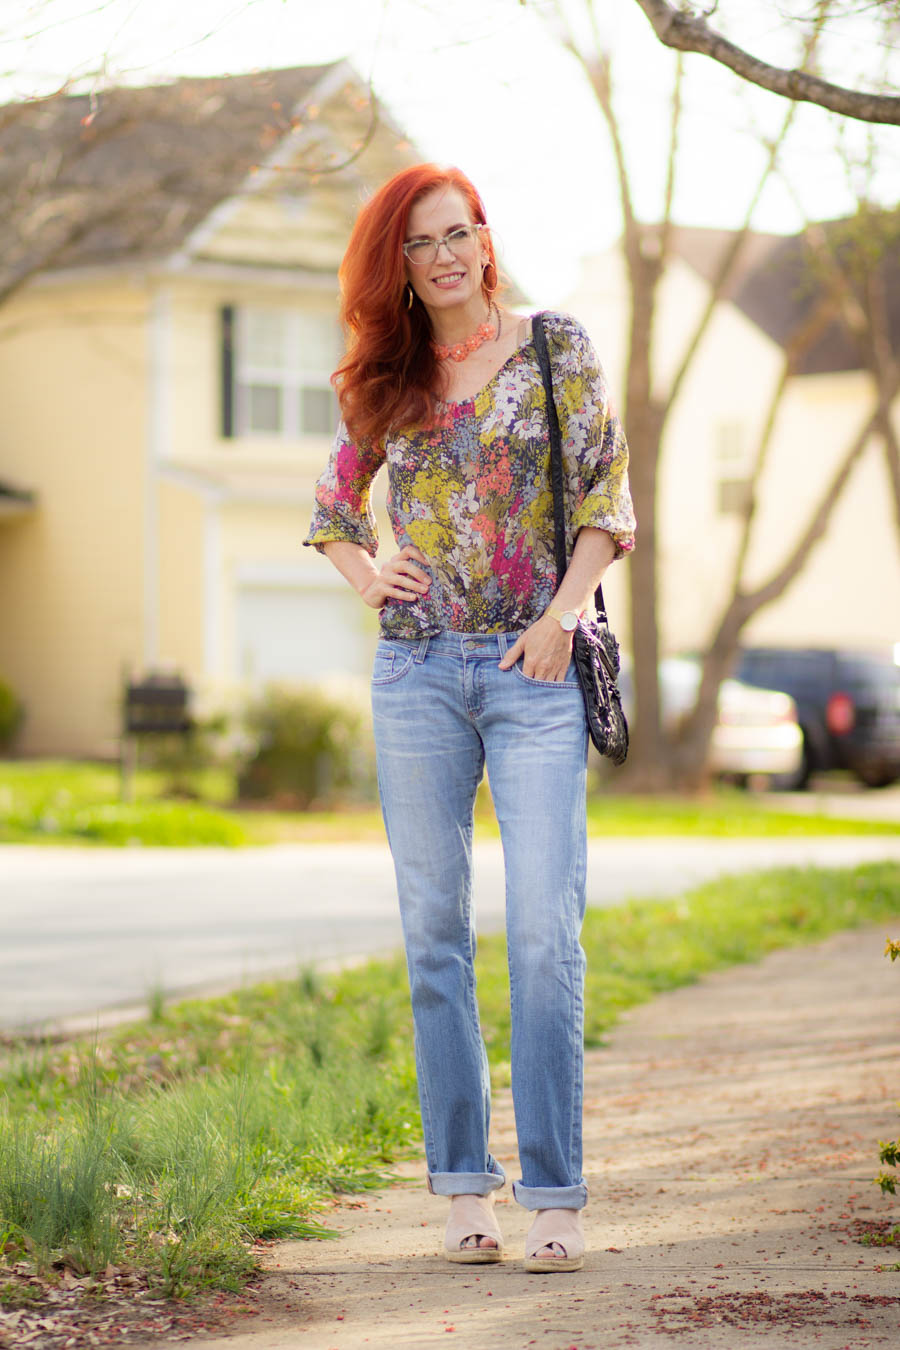 Spring floral dress and light jeans